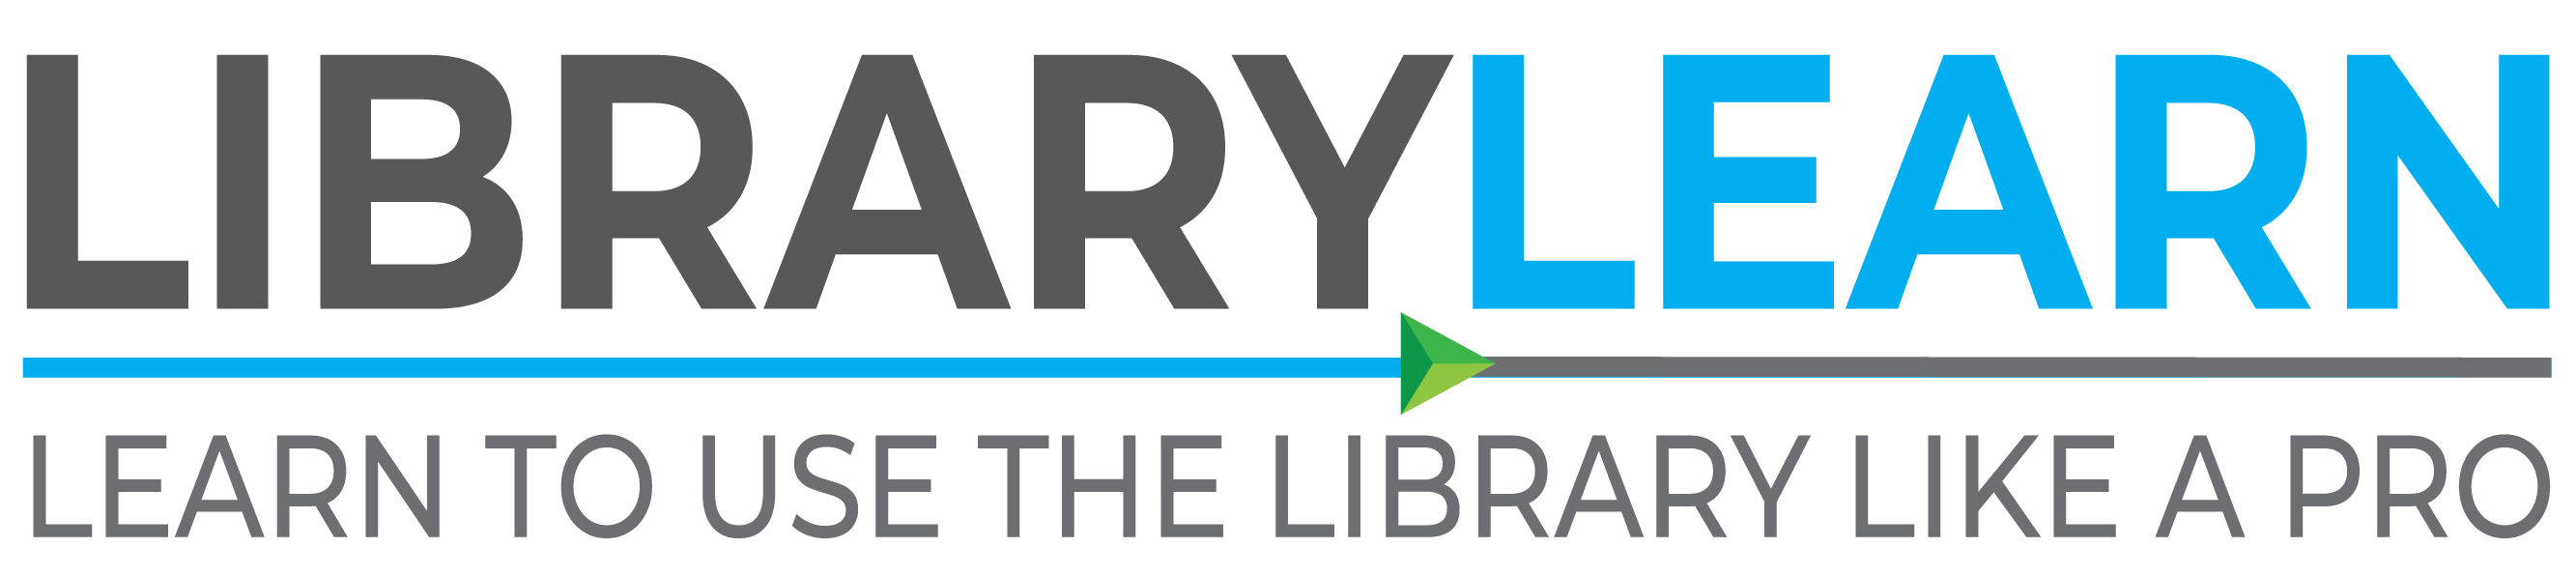 librarylearn logo